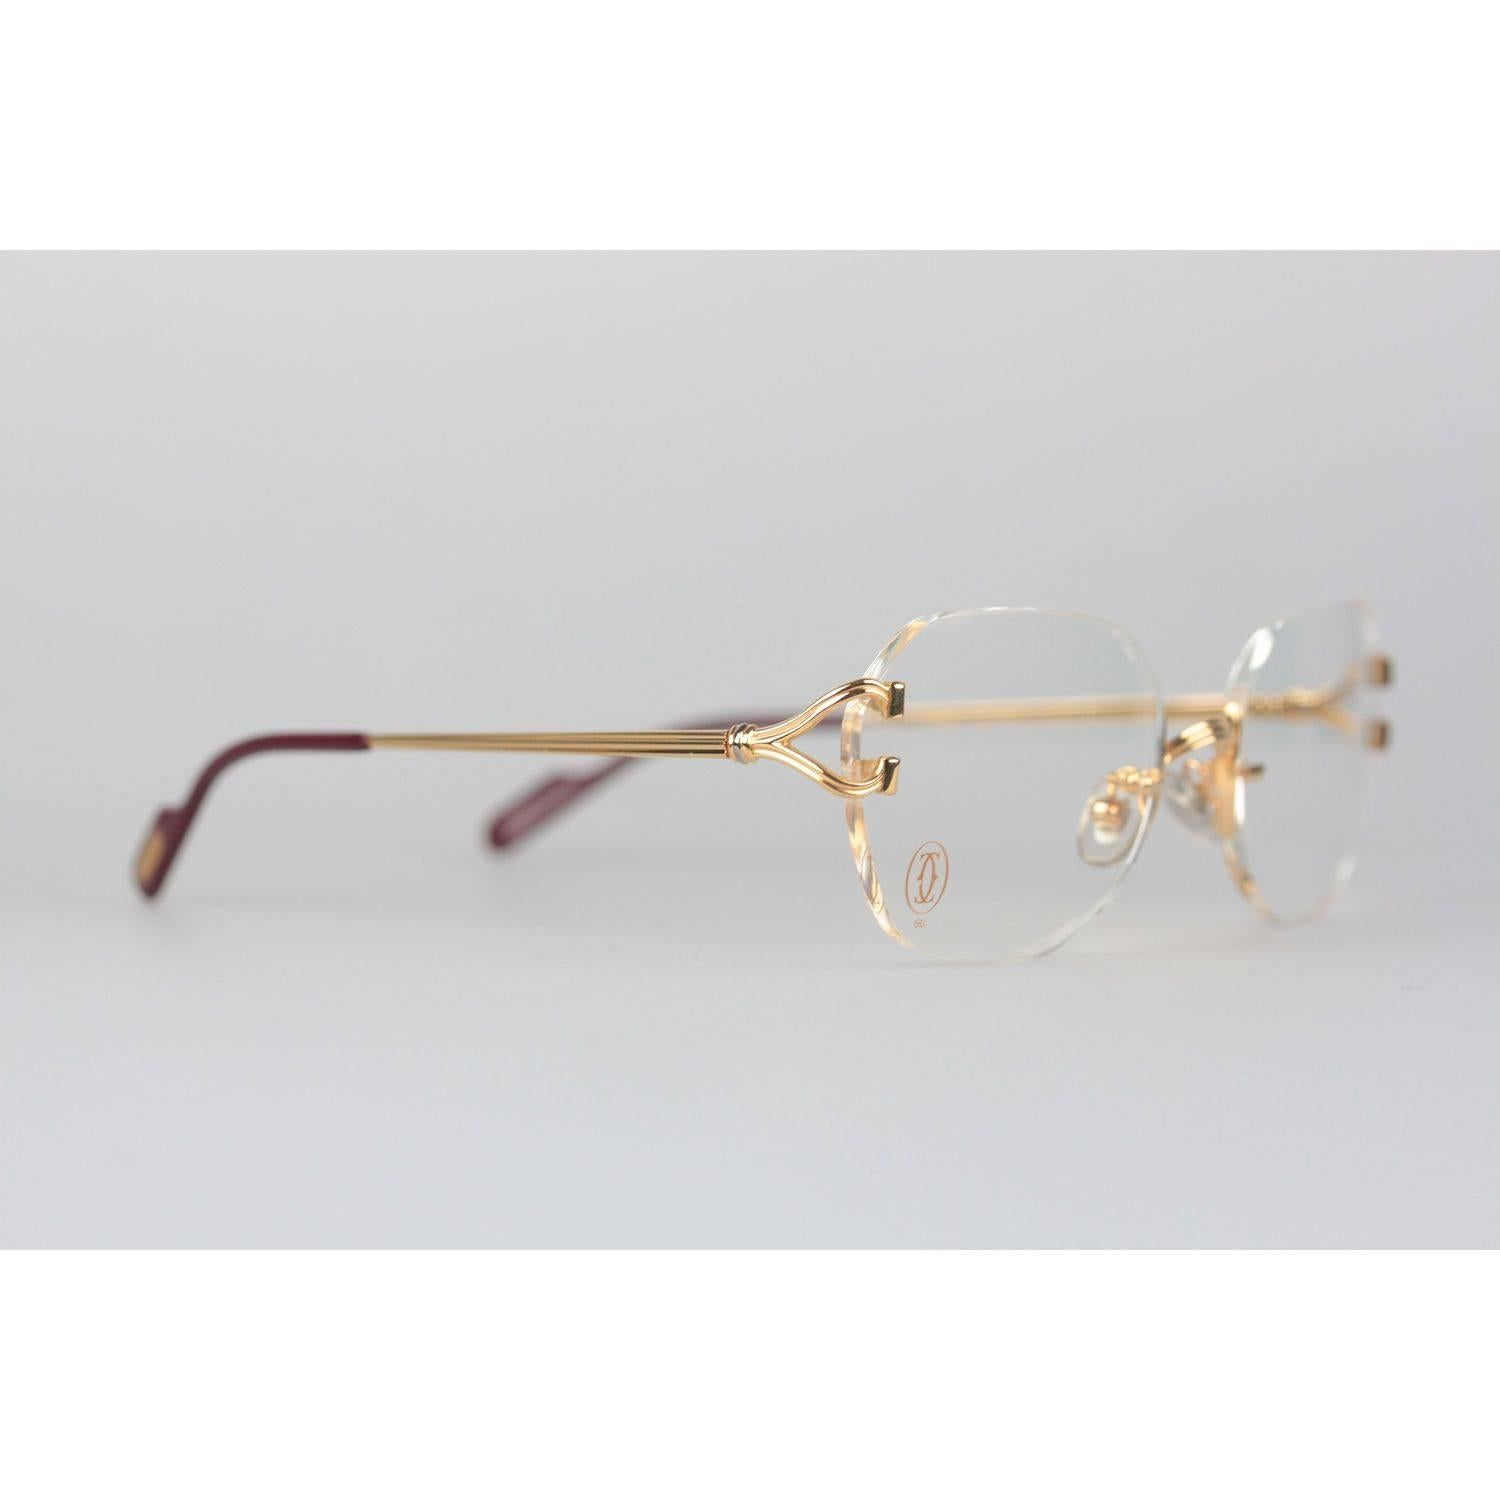 4bbdf4ae43 CARTIER Paris Vintage Eyeglasses CHELSEA Gold Rimless Frame 130 Nos For  Sale at 1stdibs